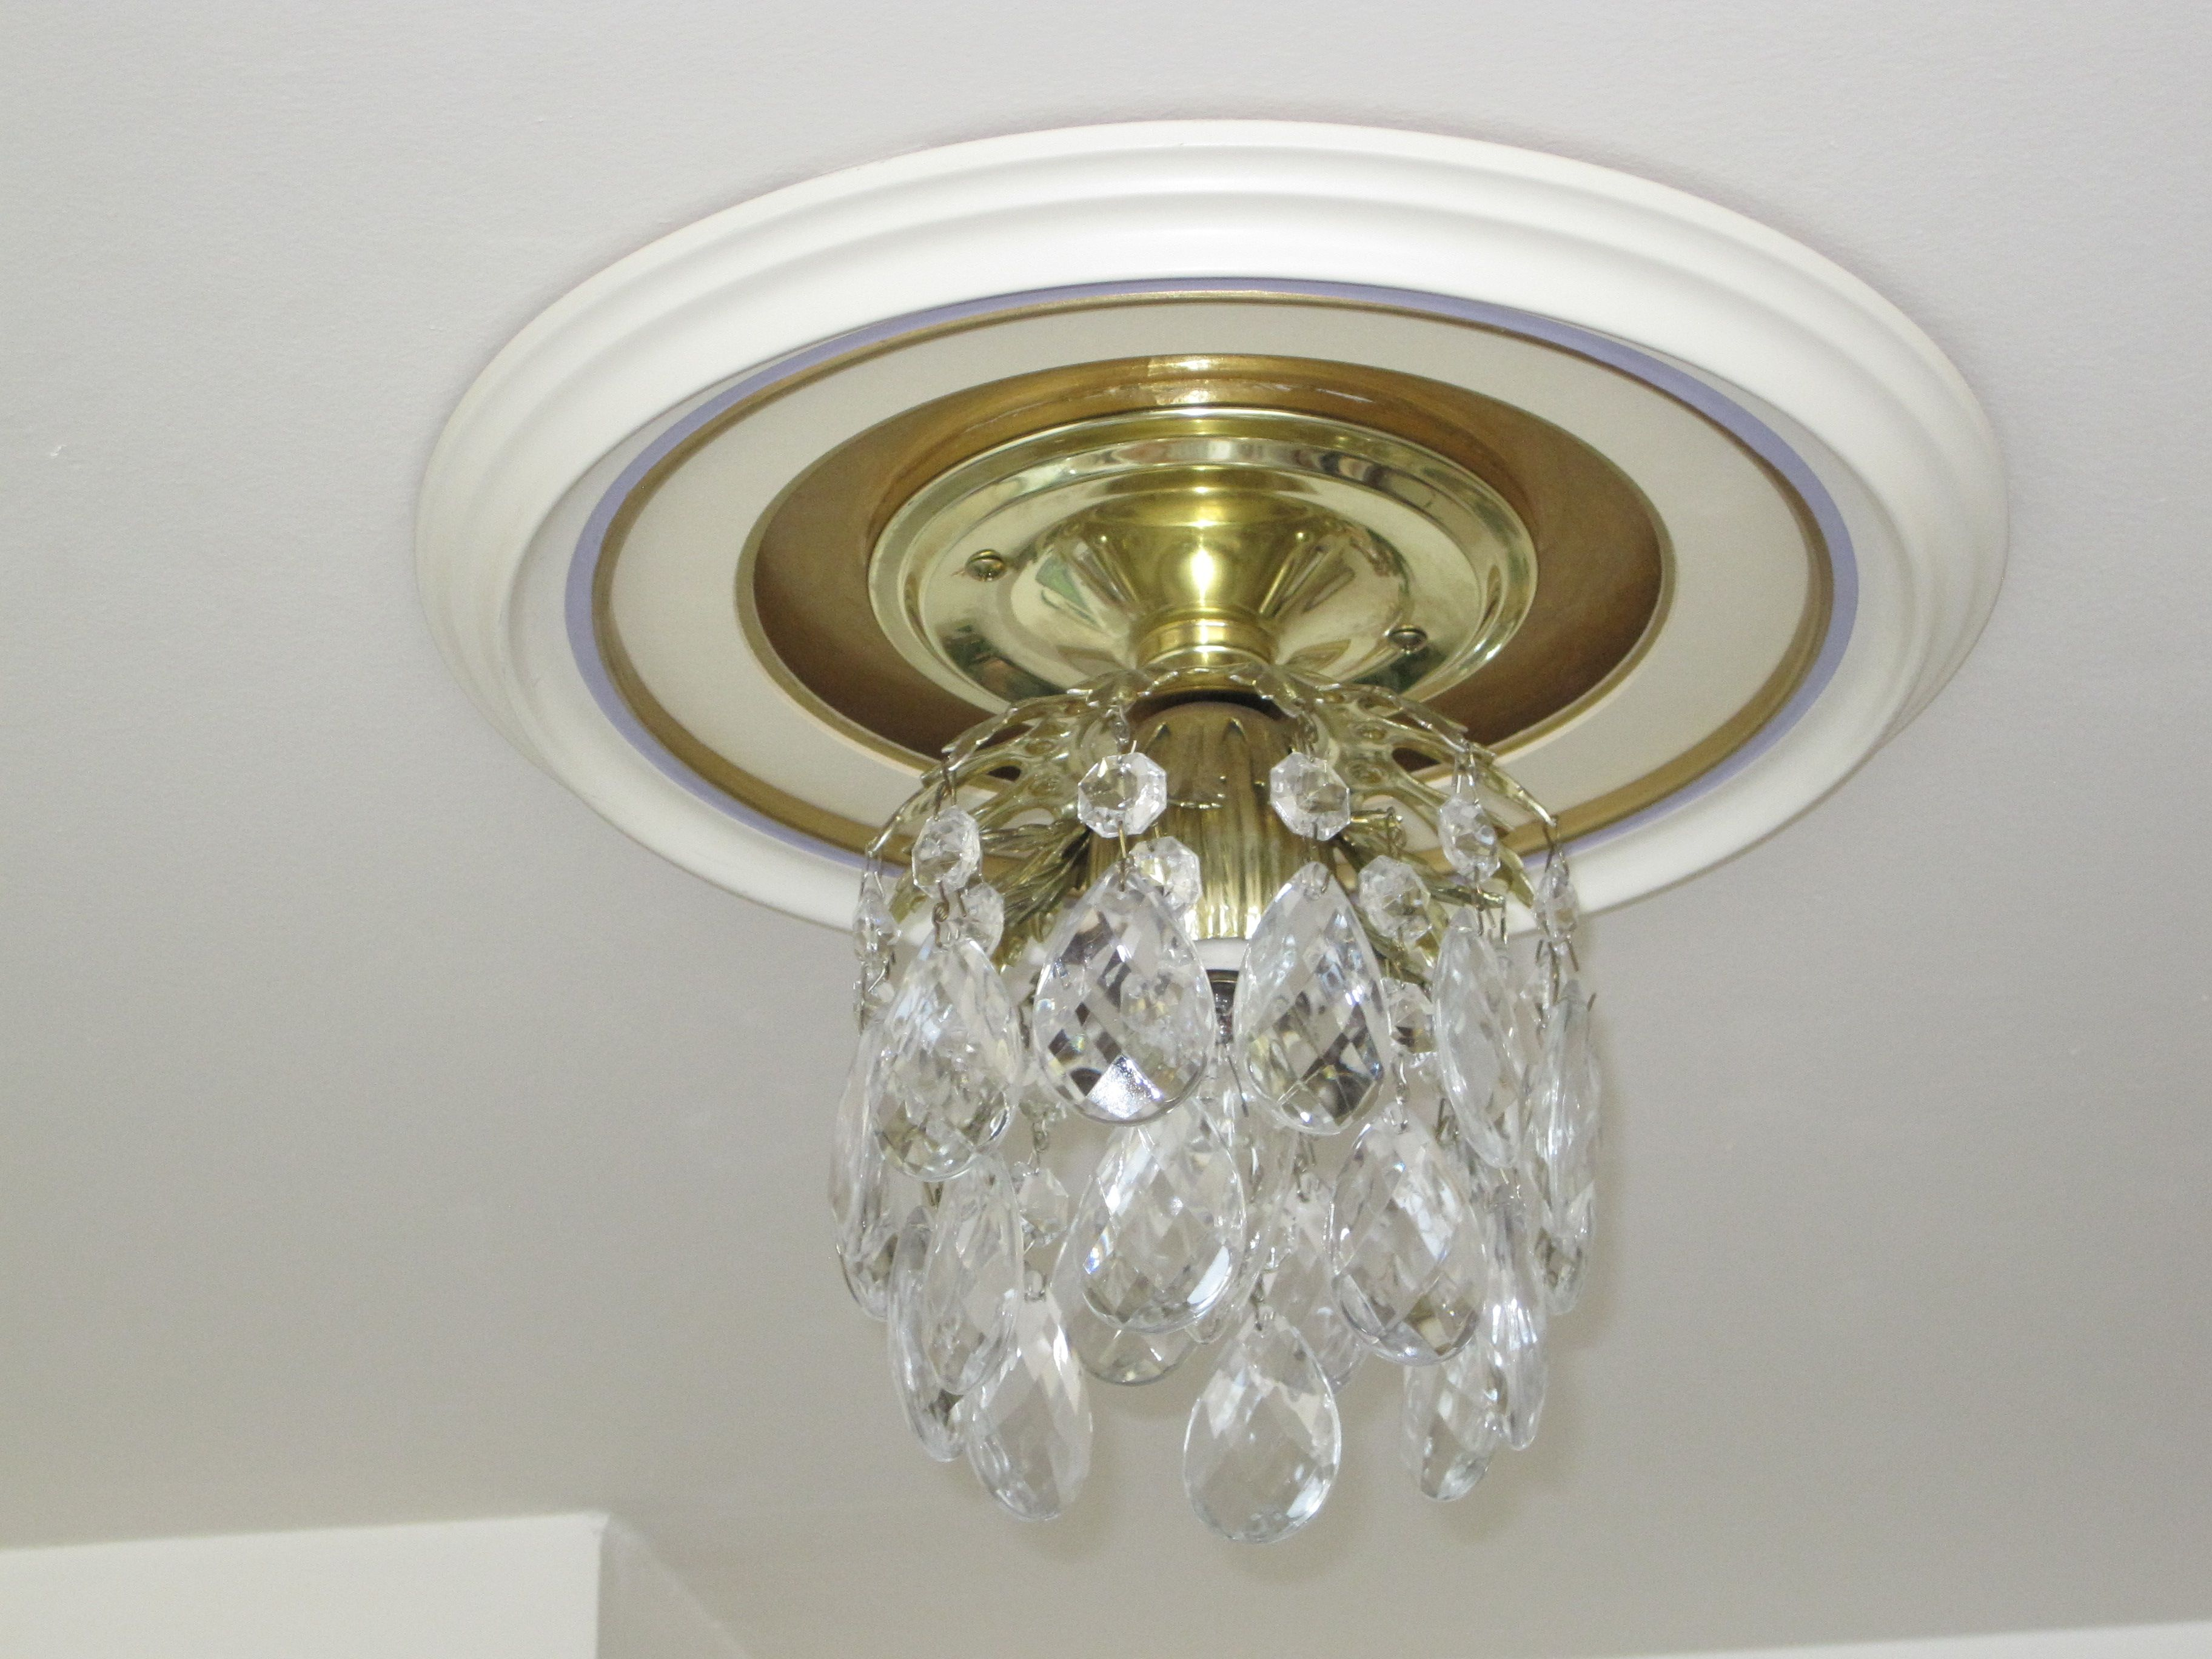 Using a picture frame as a medallion for a ceiling light fixture.